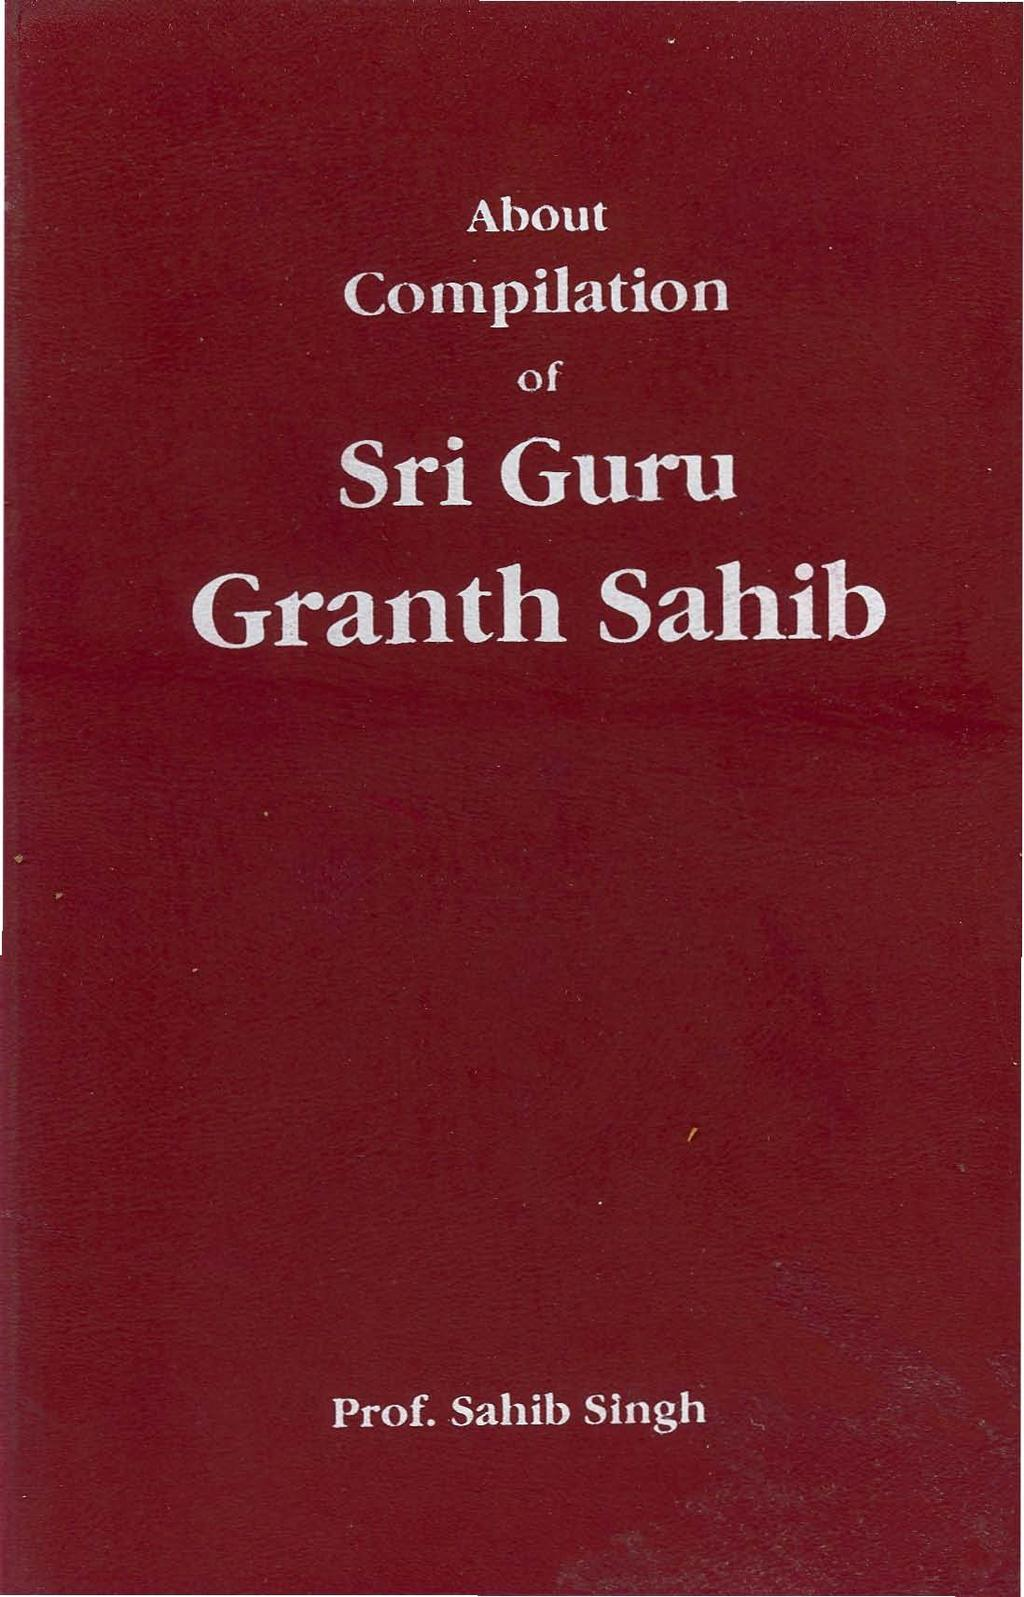 Guru Granth Sahib In Urdu Pdf